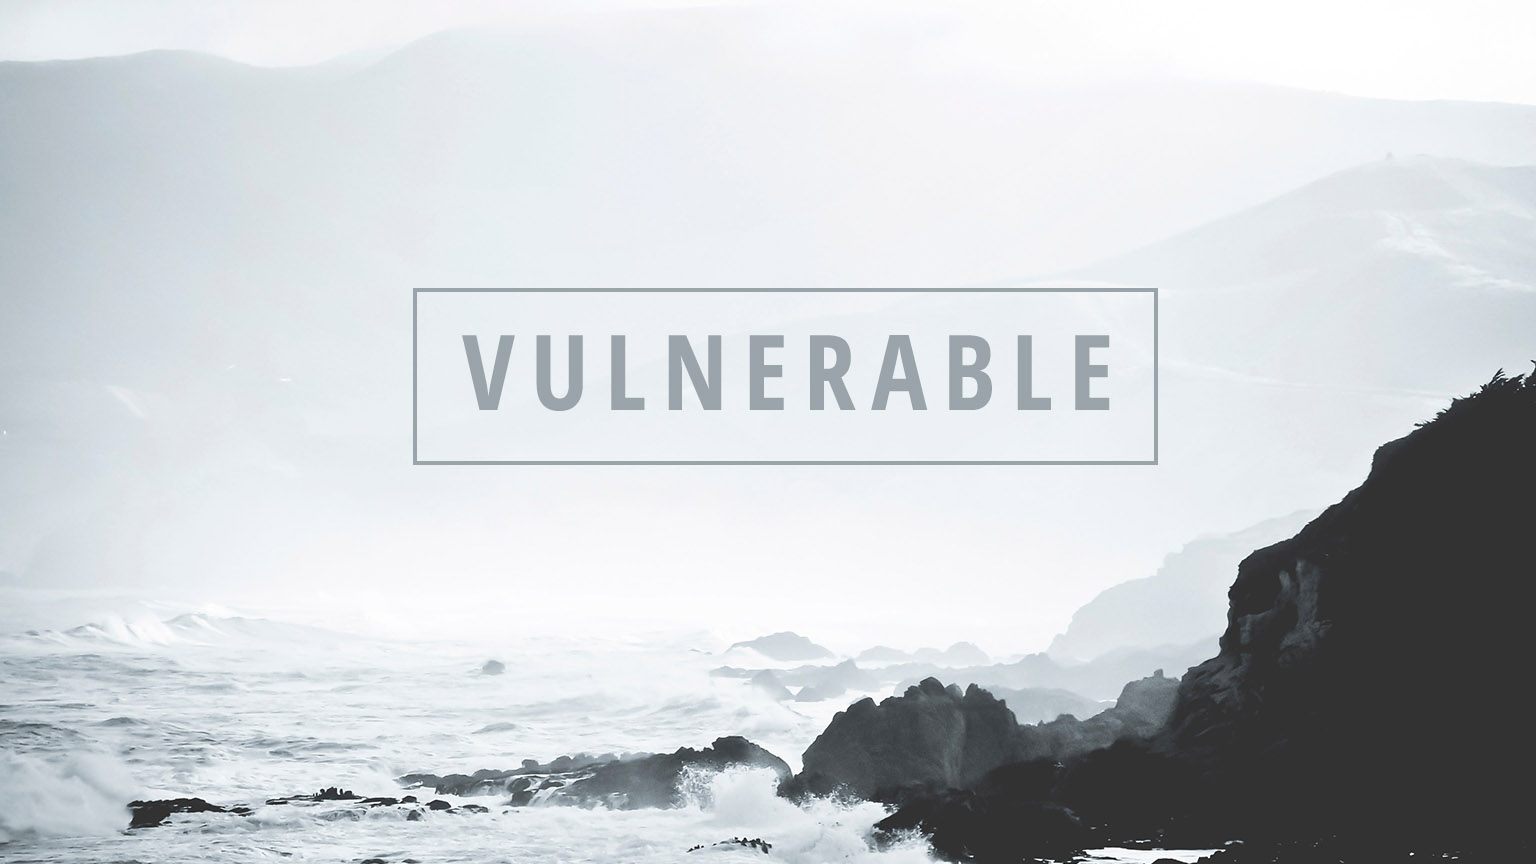 Vulnerable cover - foggy sky over ocean with waves breaking on cliffs